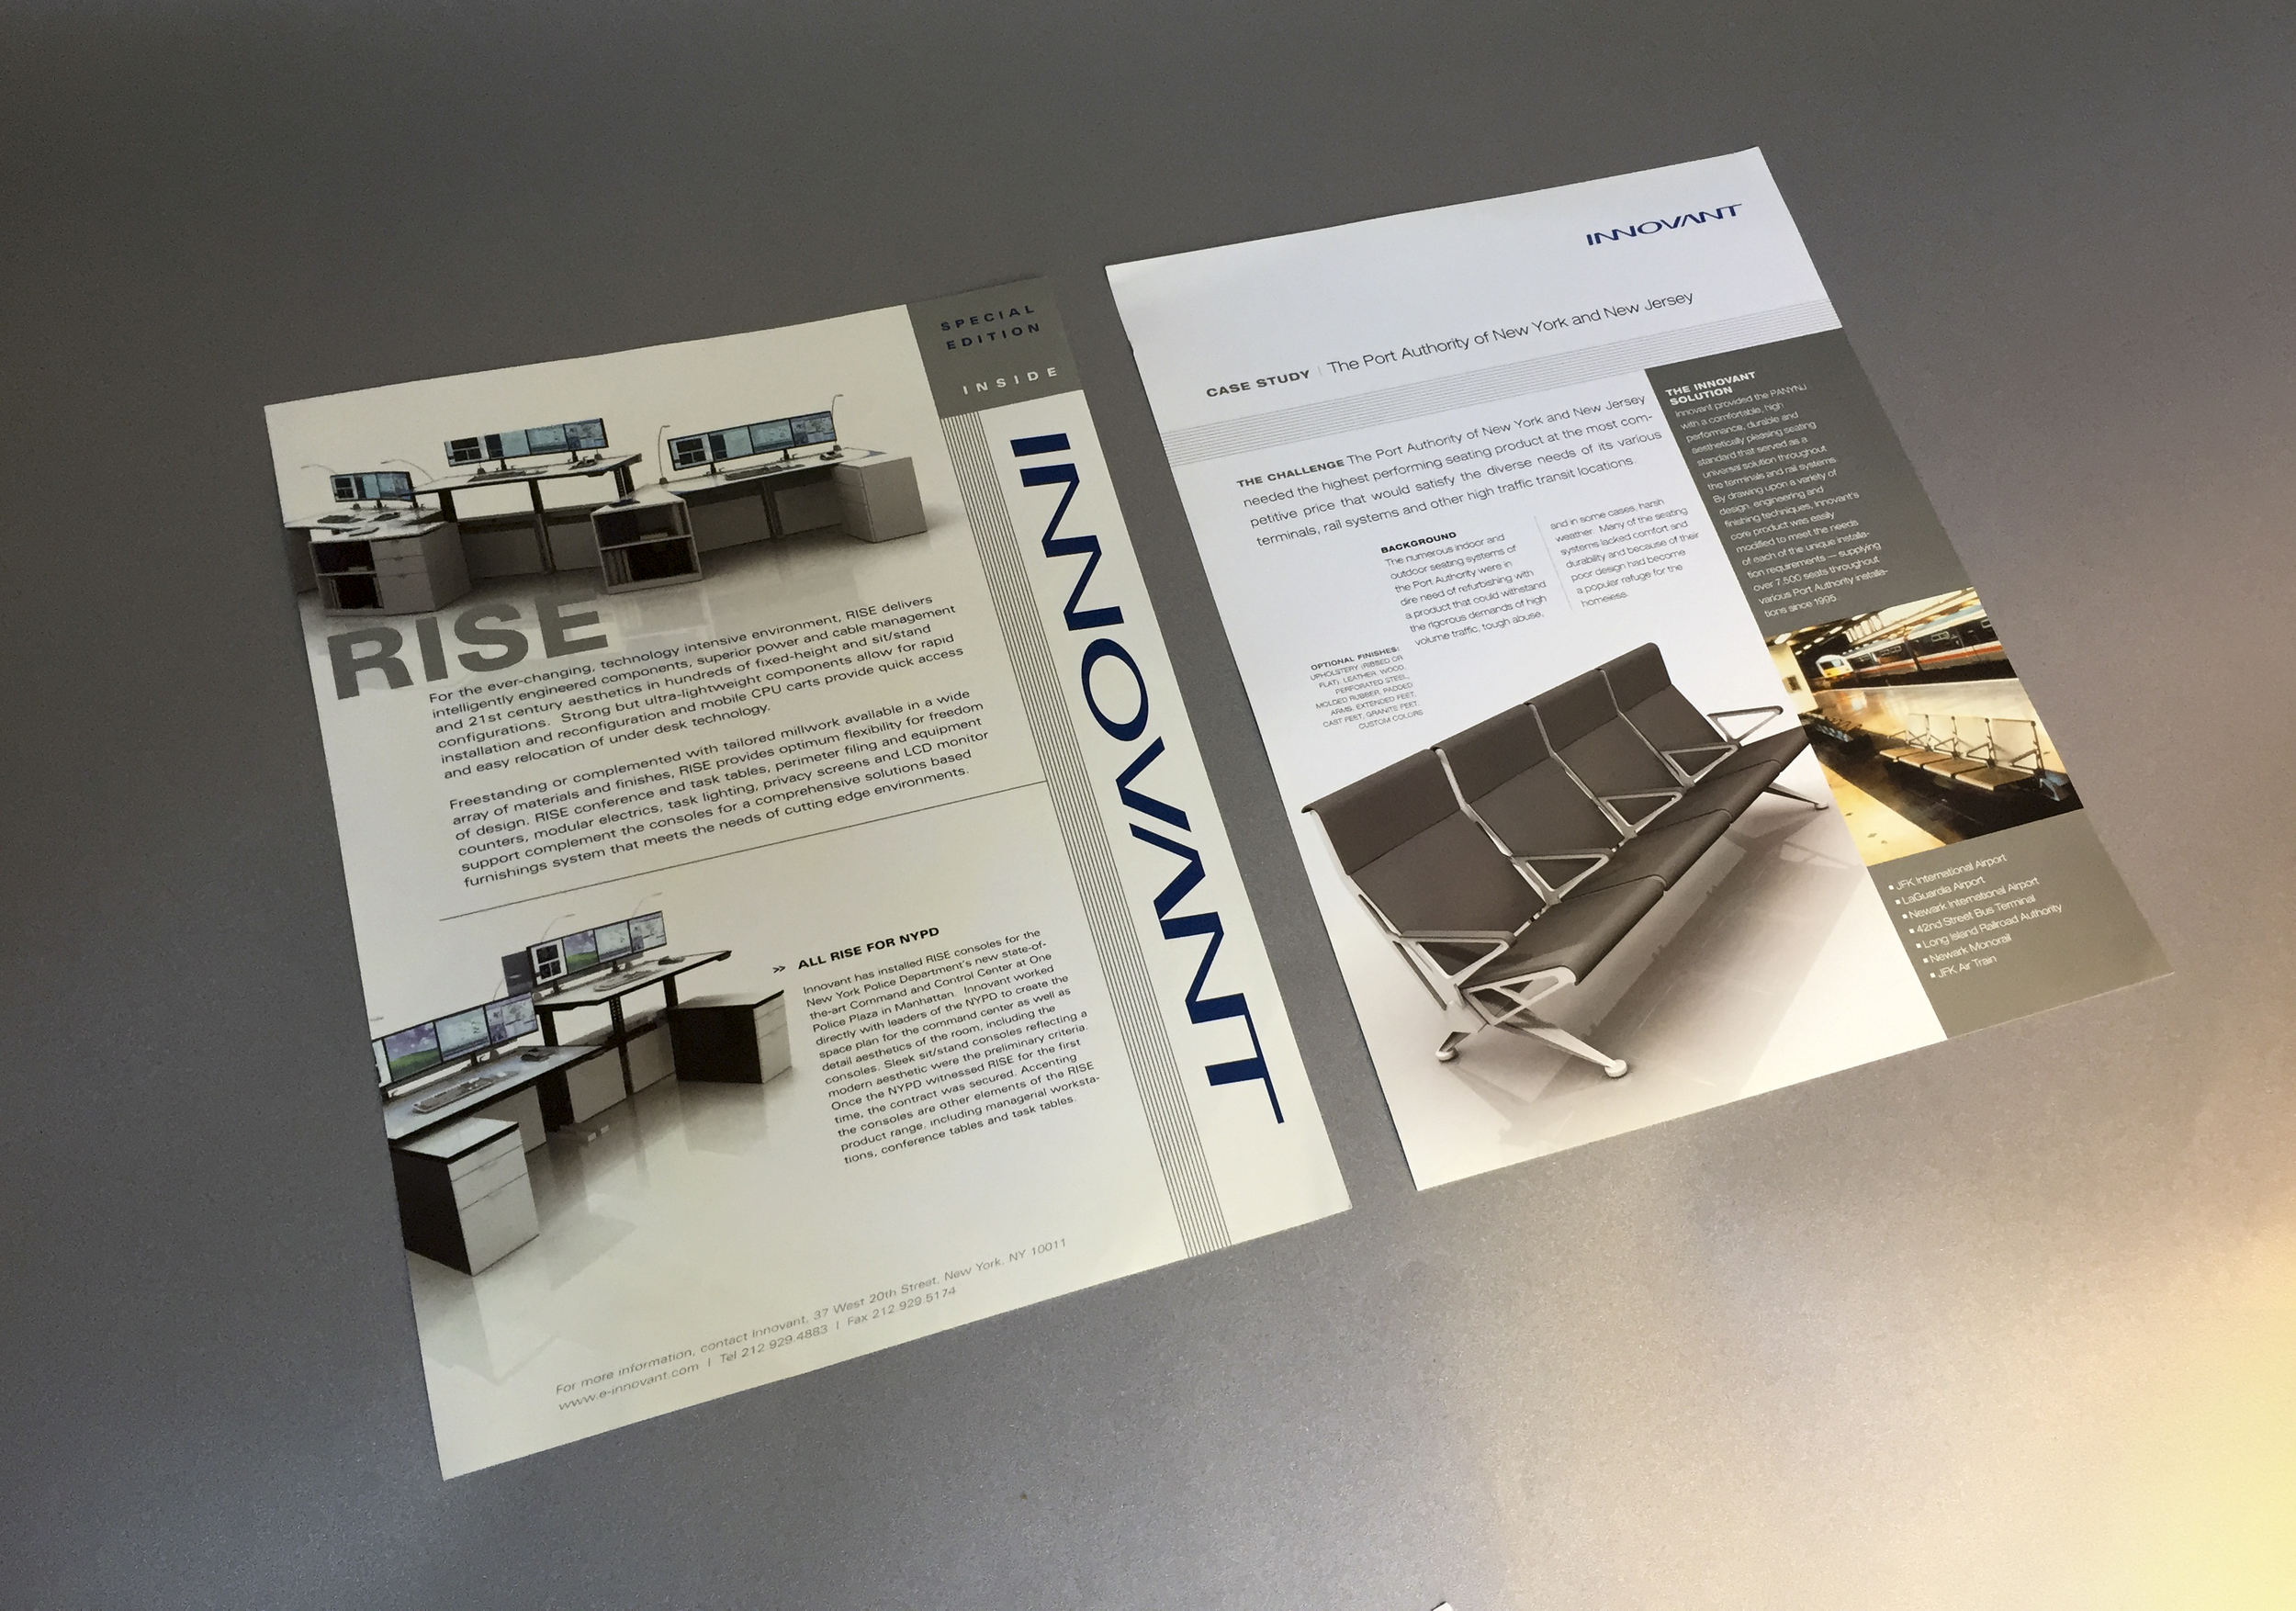 Innovant:  High end furniture company sales collateral